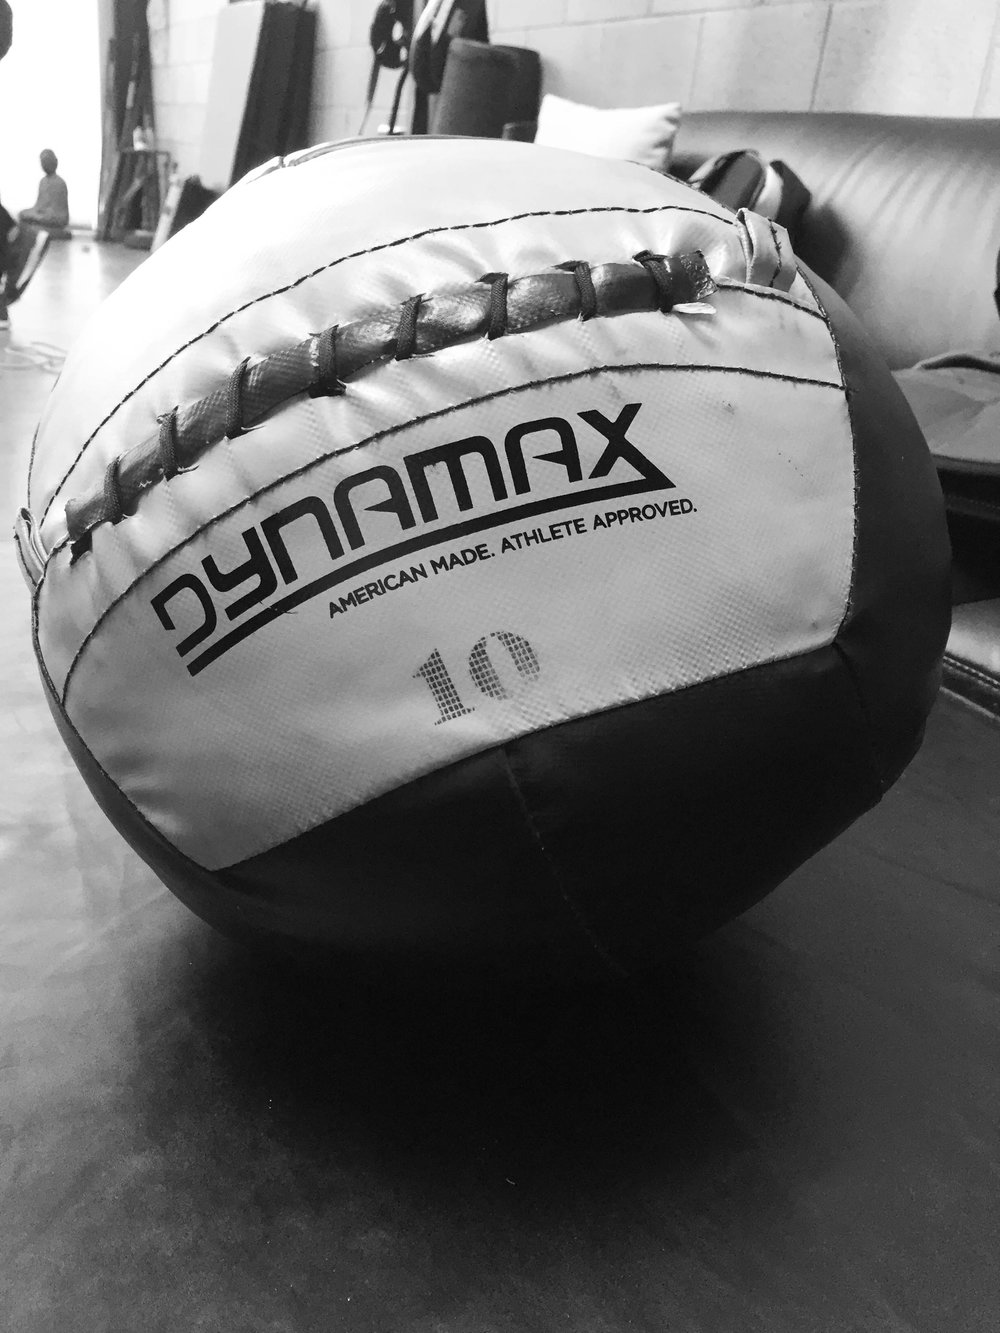 Dynamax Soft-Shell Medecine Ball -  http://amzn.to/2lteJ60